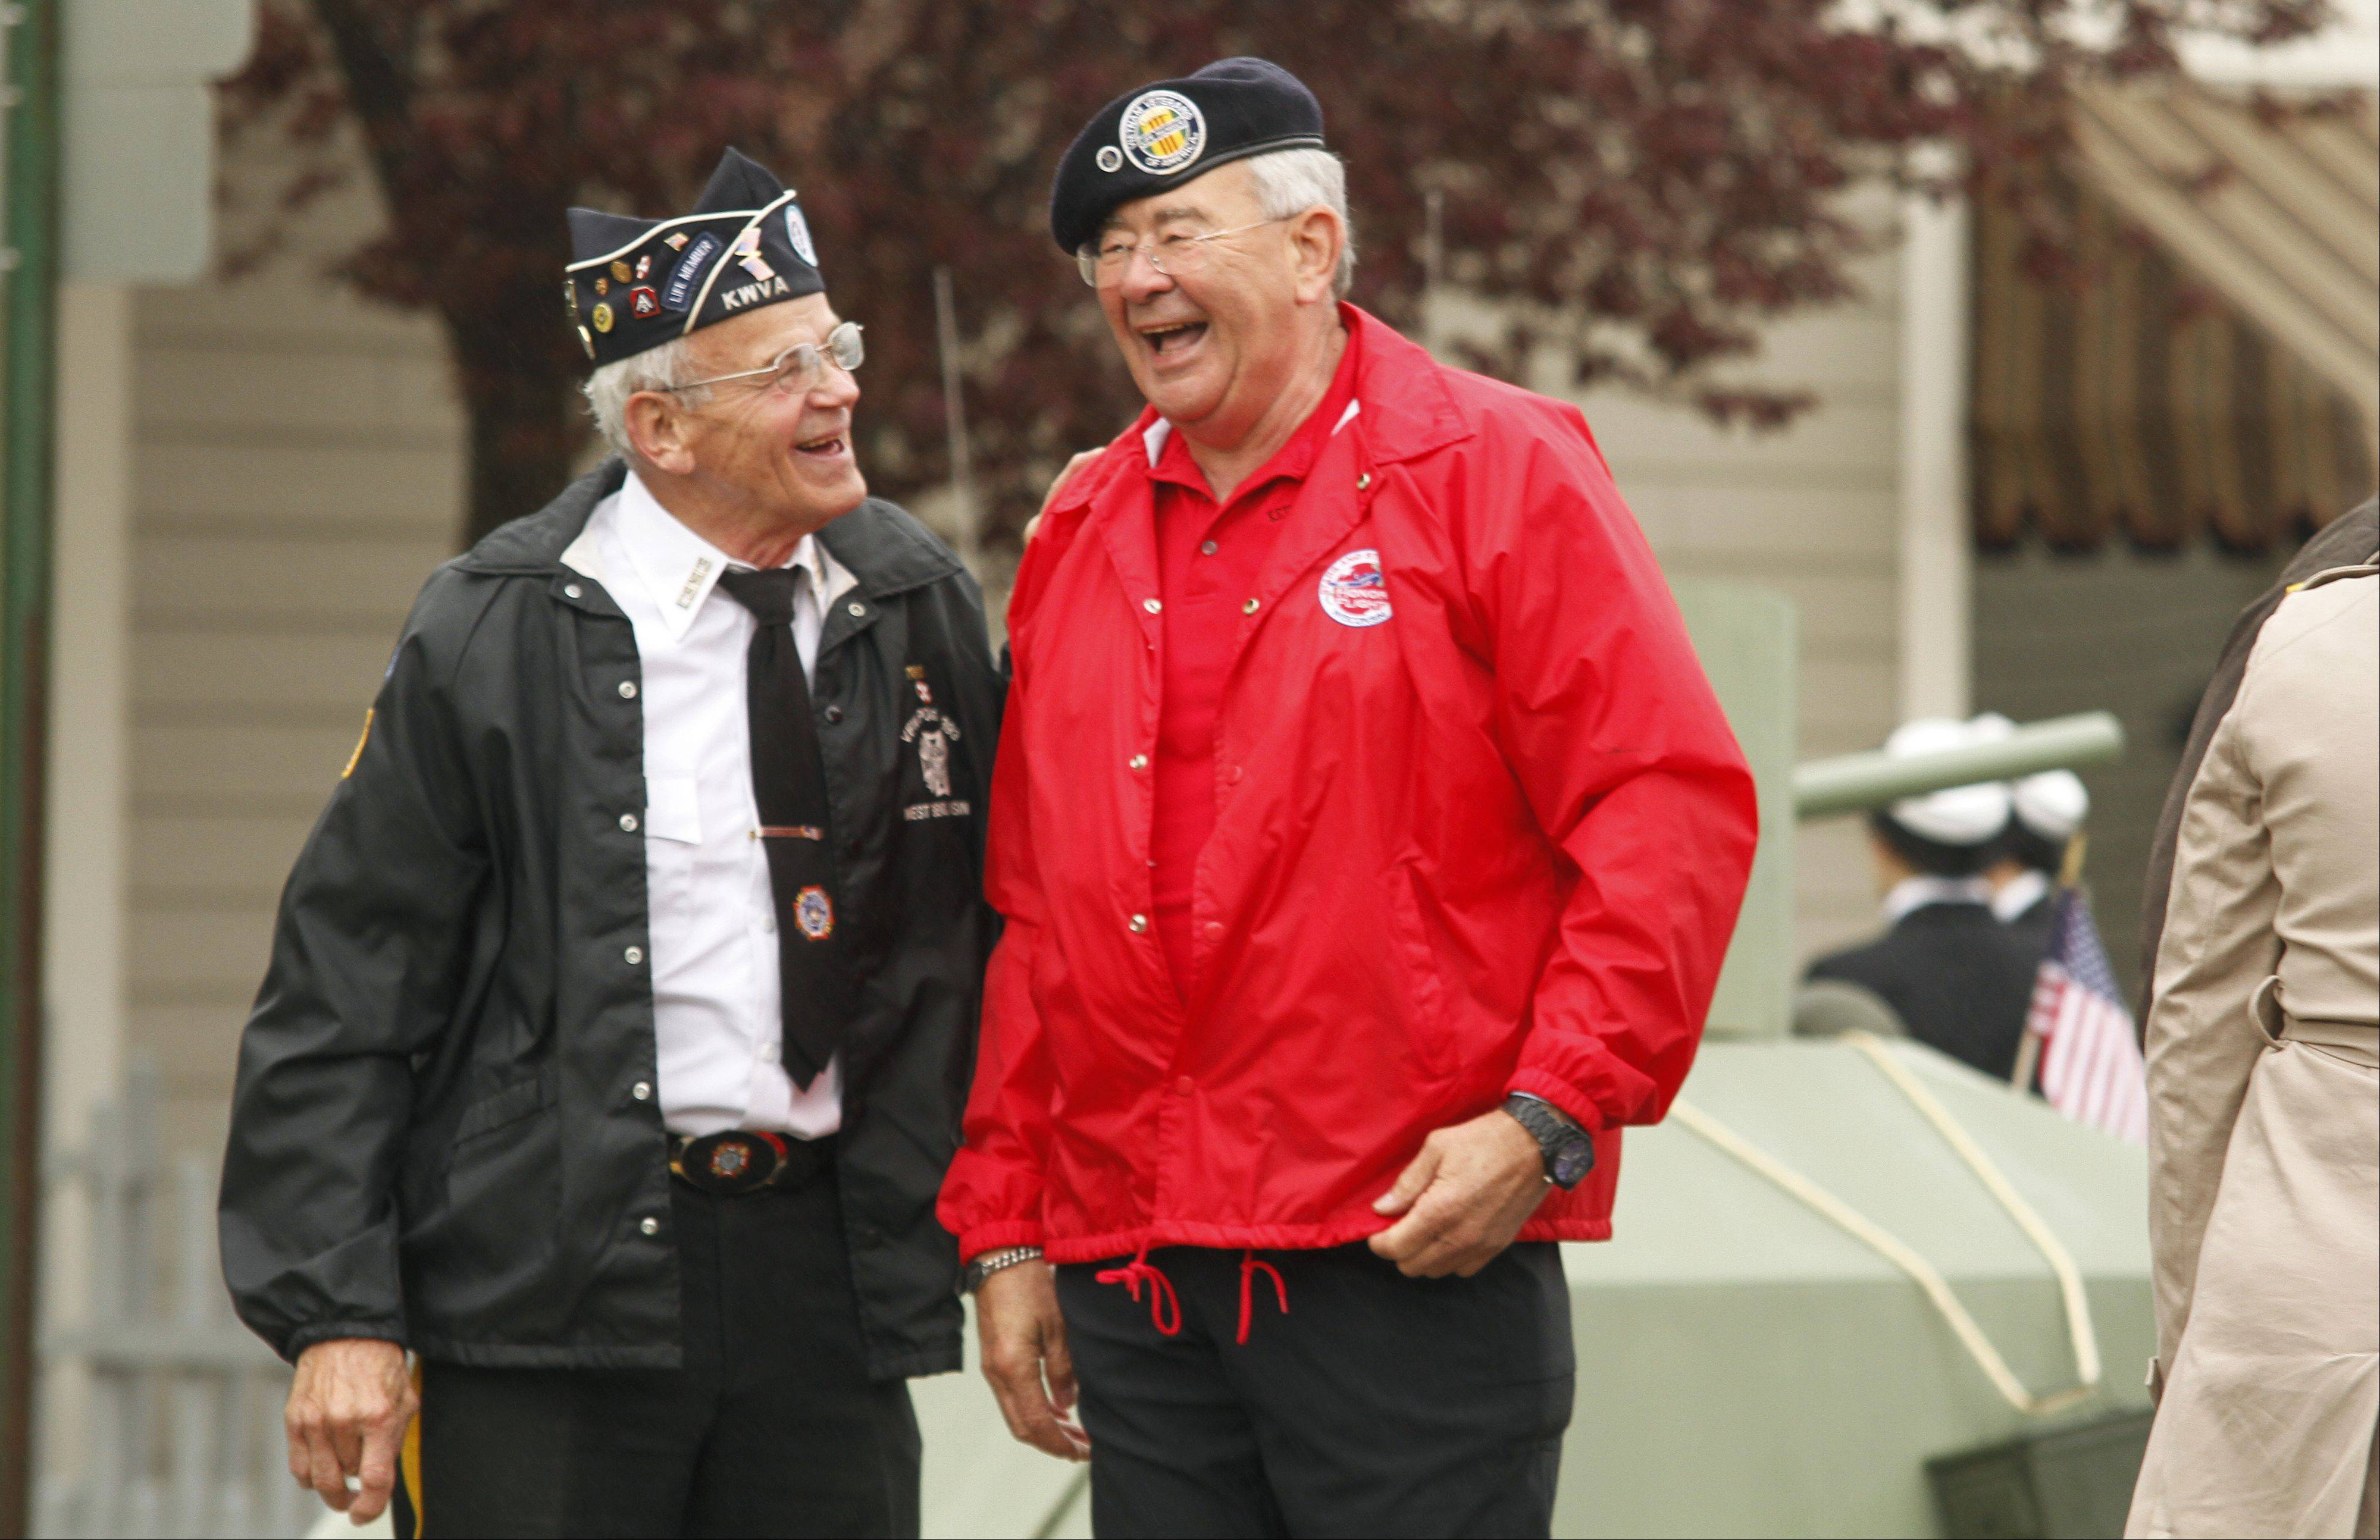 Korean War Veteran Merlin Stockhausen of West Bend, left, talks with Air Force Veteran Richard Lindbeck before the Memorial Day parade in West Bend on Monday, May 27, 2013.